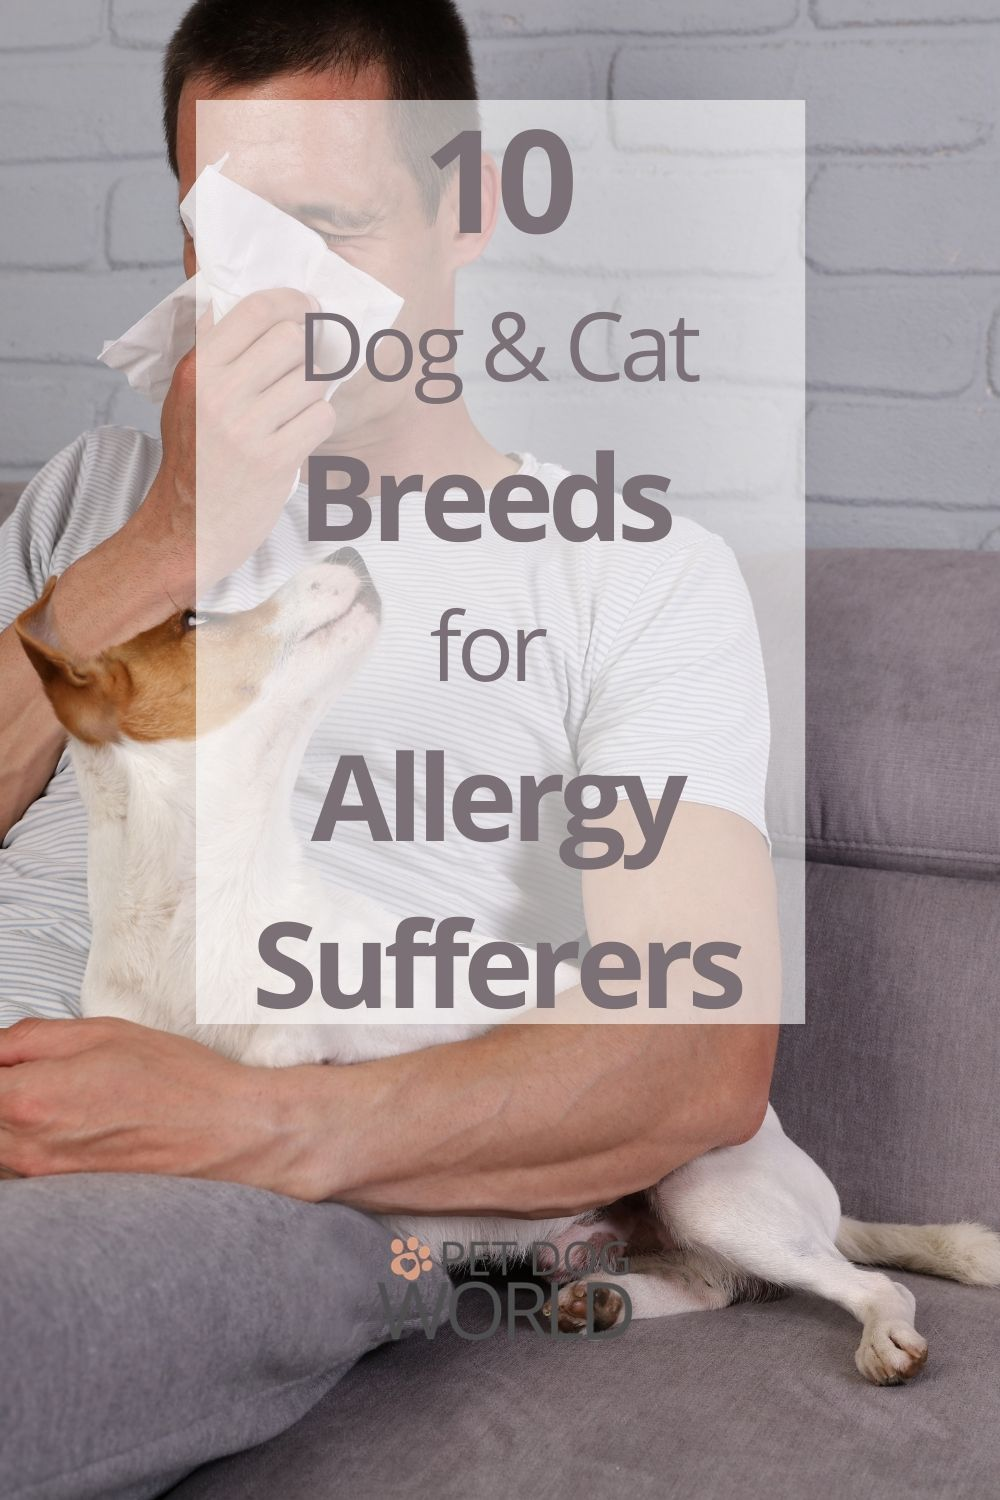 Being allergic to cats or dogs does not necessarily mean you will never be able to own one. Discover ten breeds that may finally give allergy sufferers the ability to own a cat or dog.